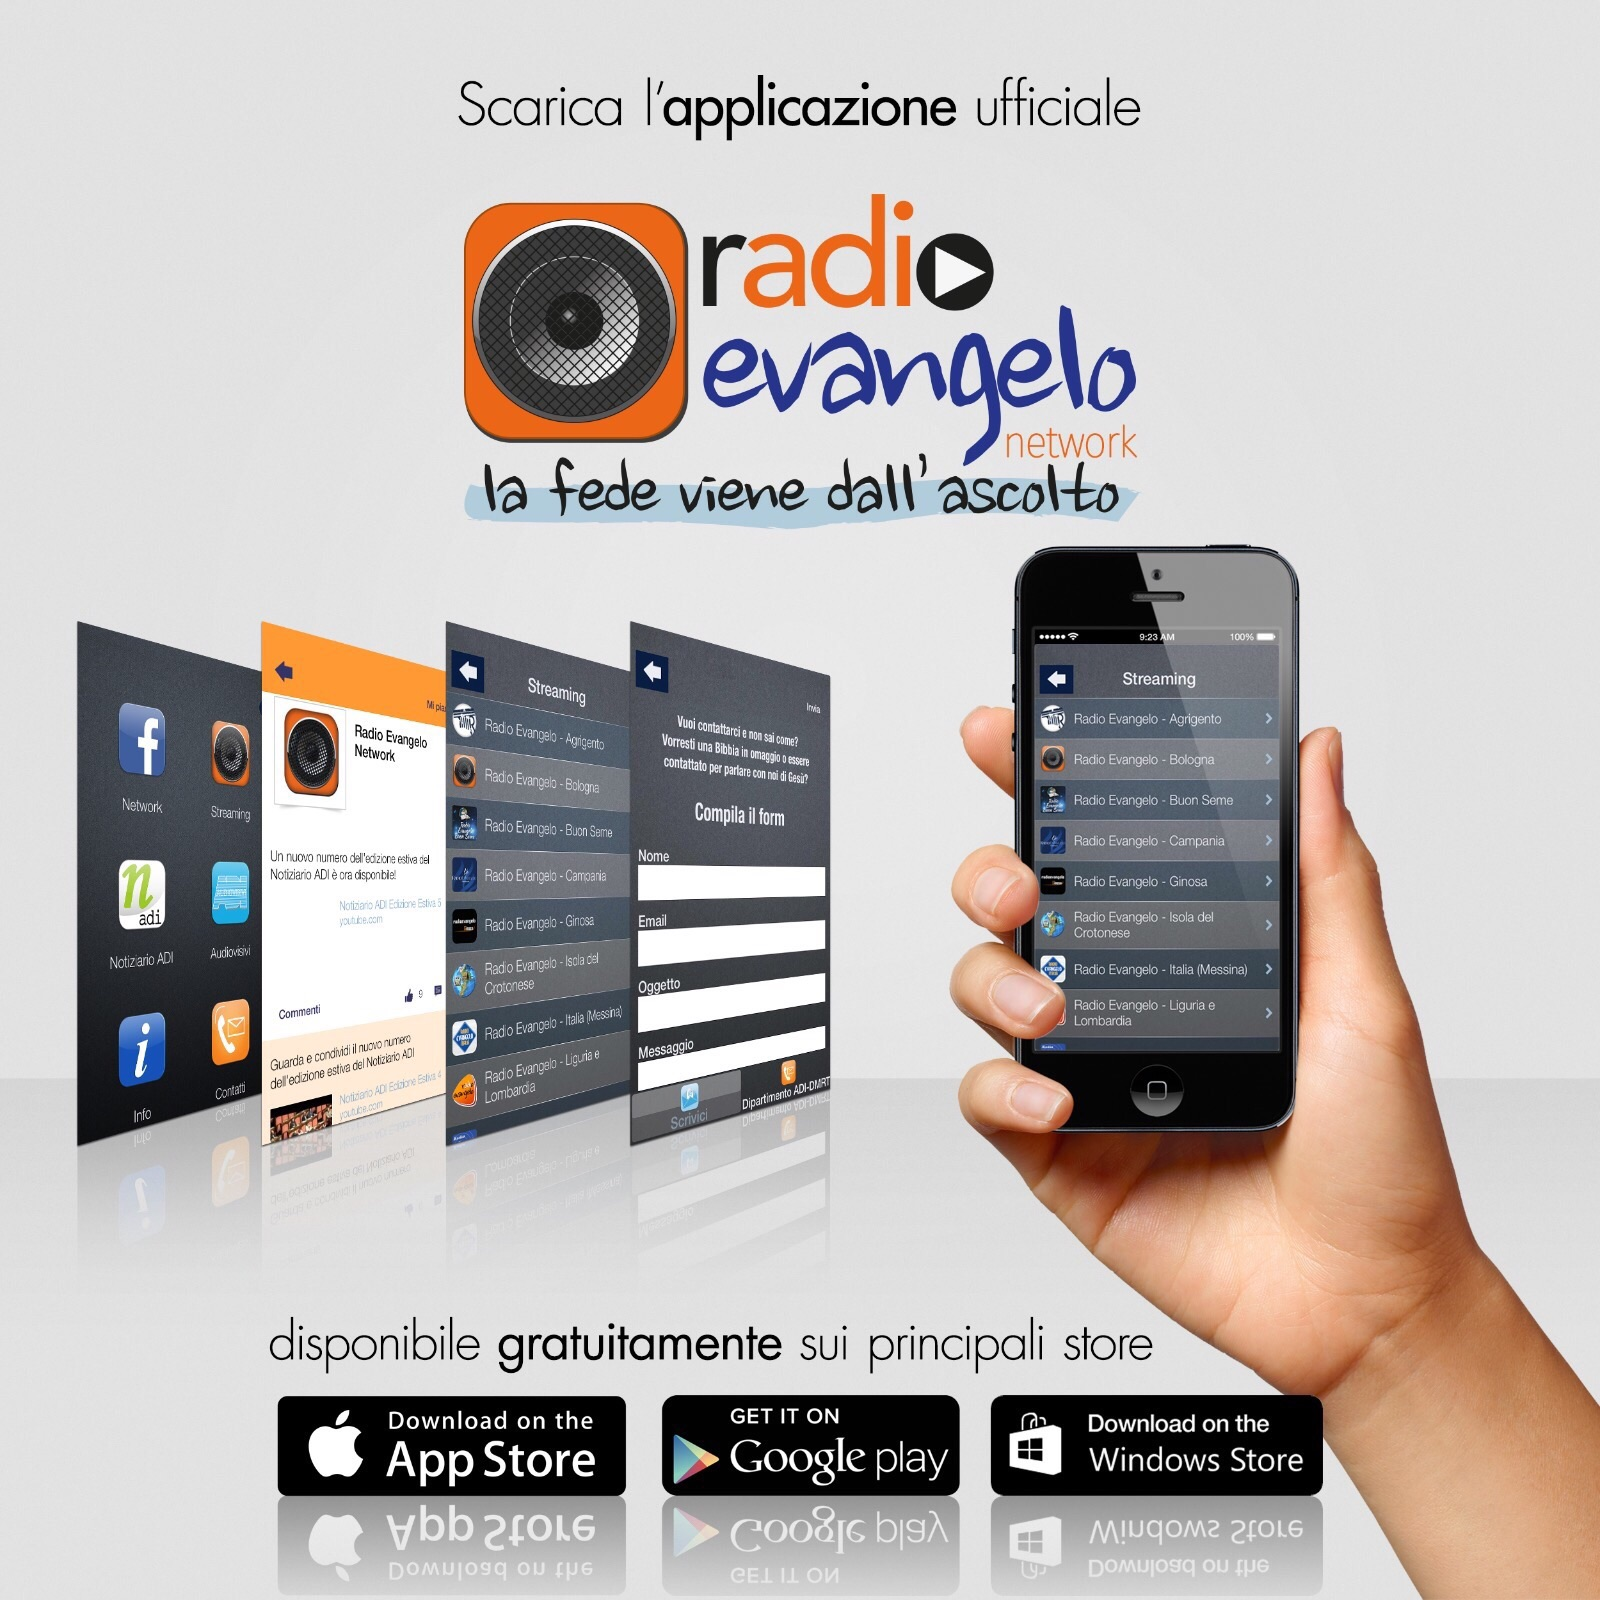 Radio Evangelo Network